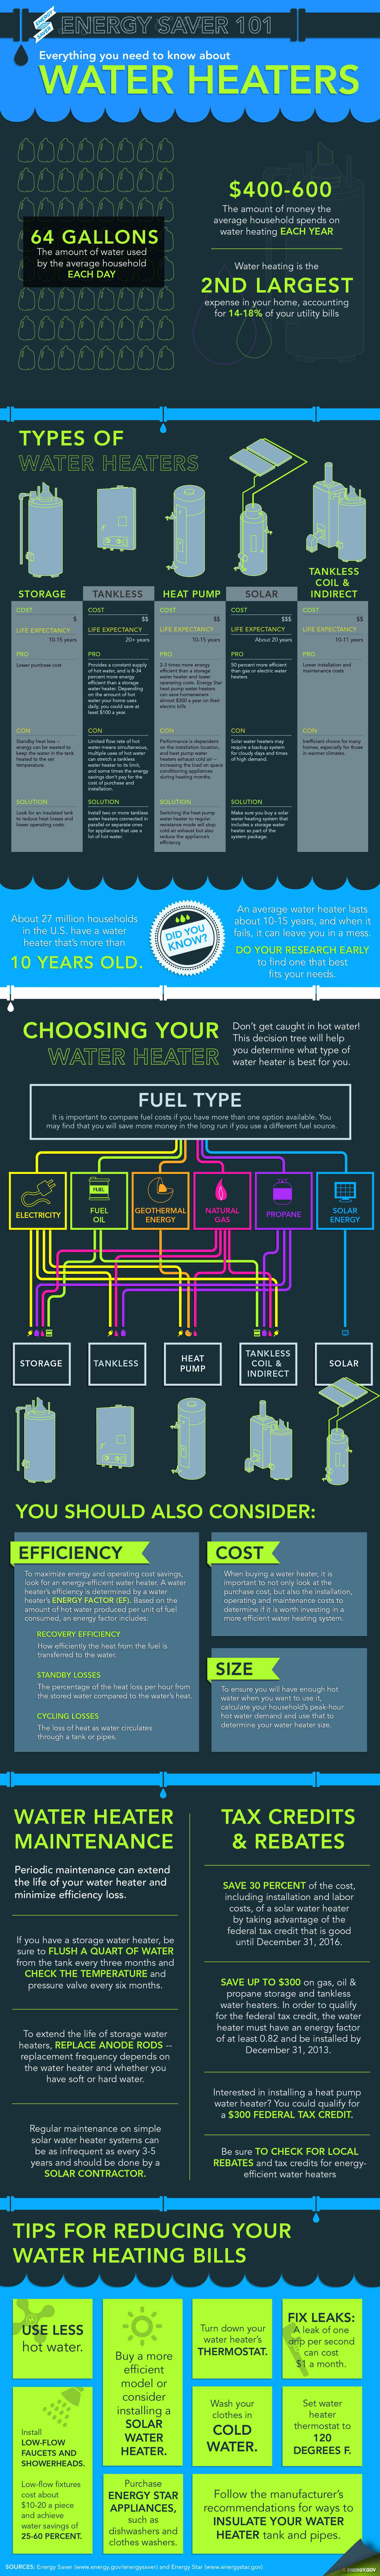 water heating infographic